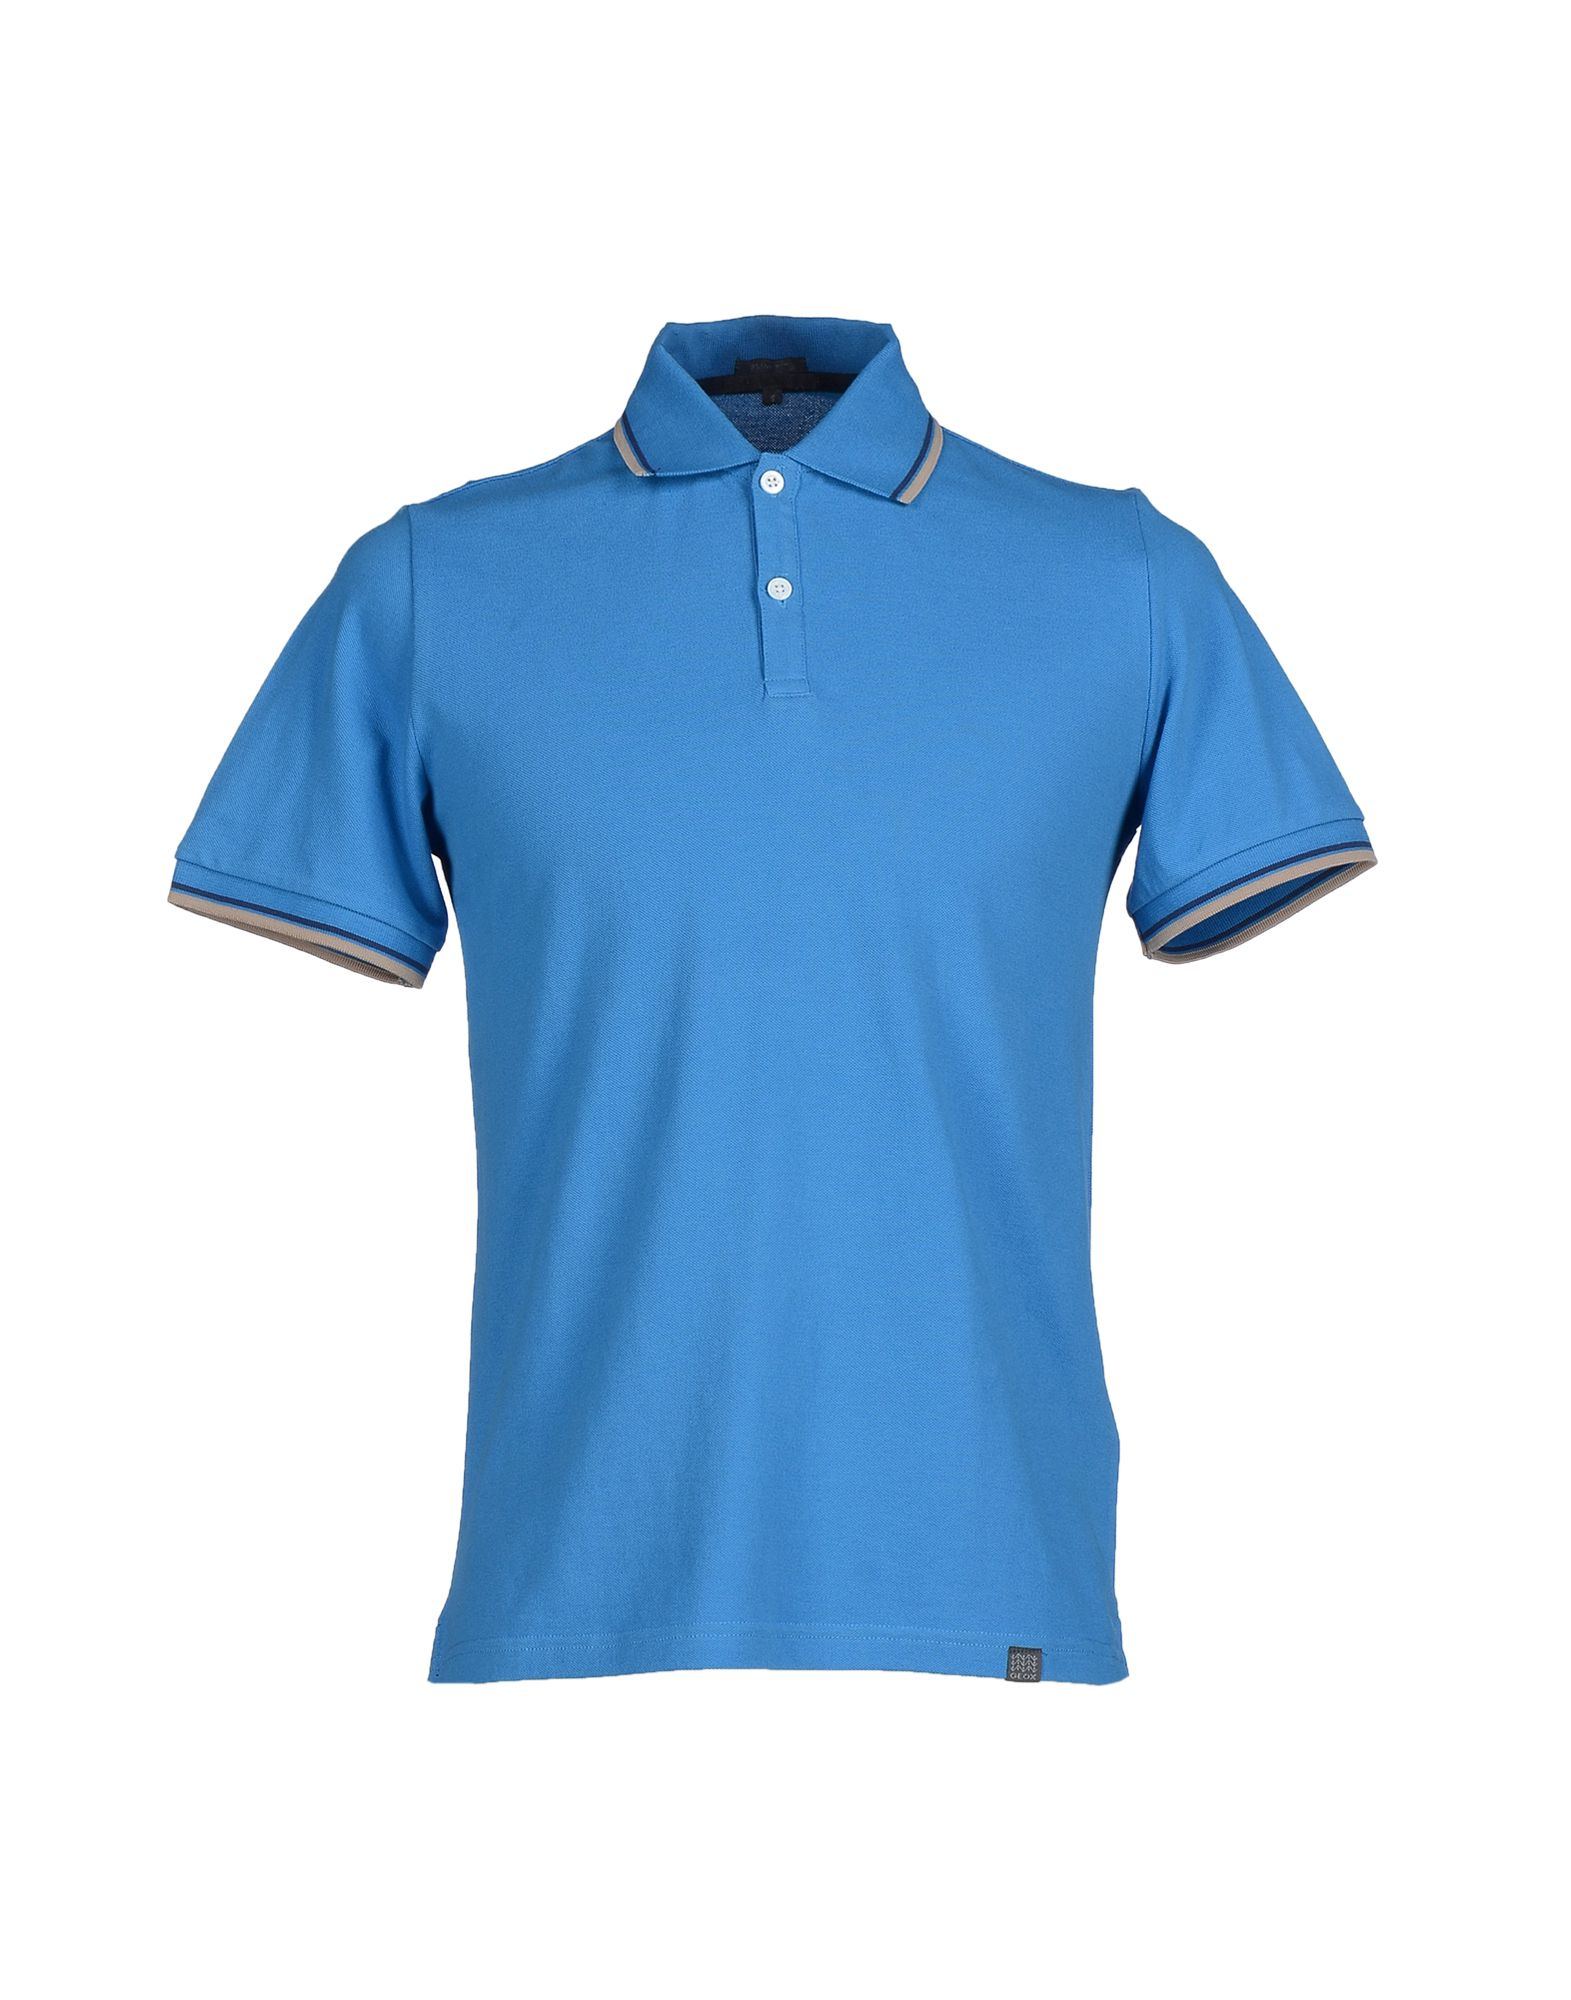 Lyst geox polo shirt in blue for men Man in polo shirt